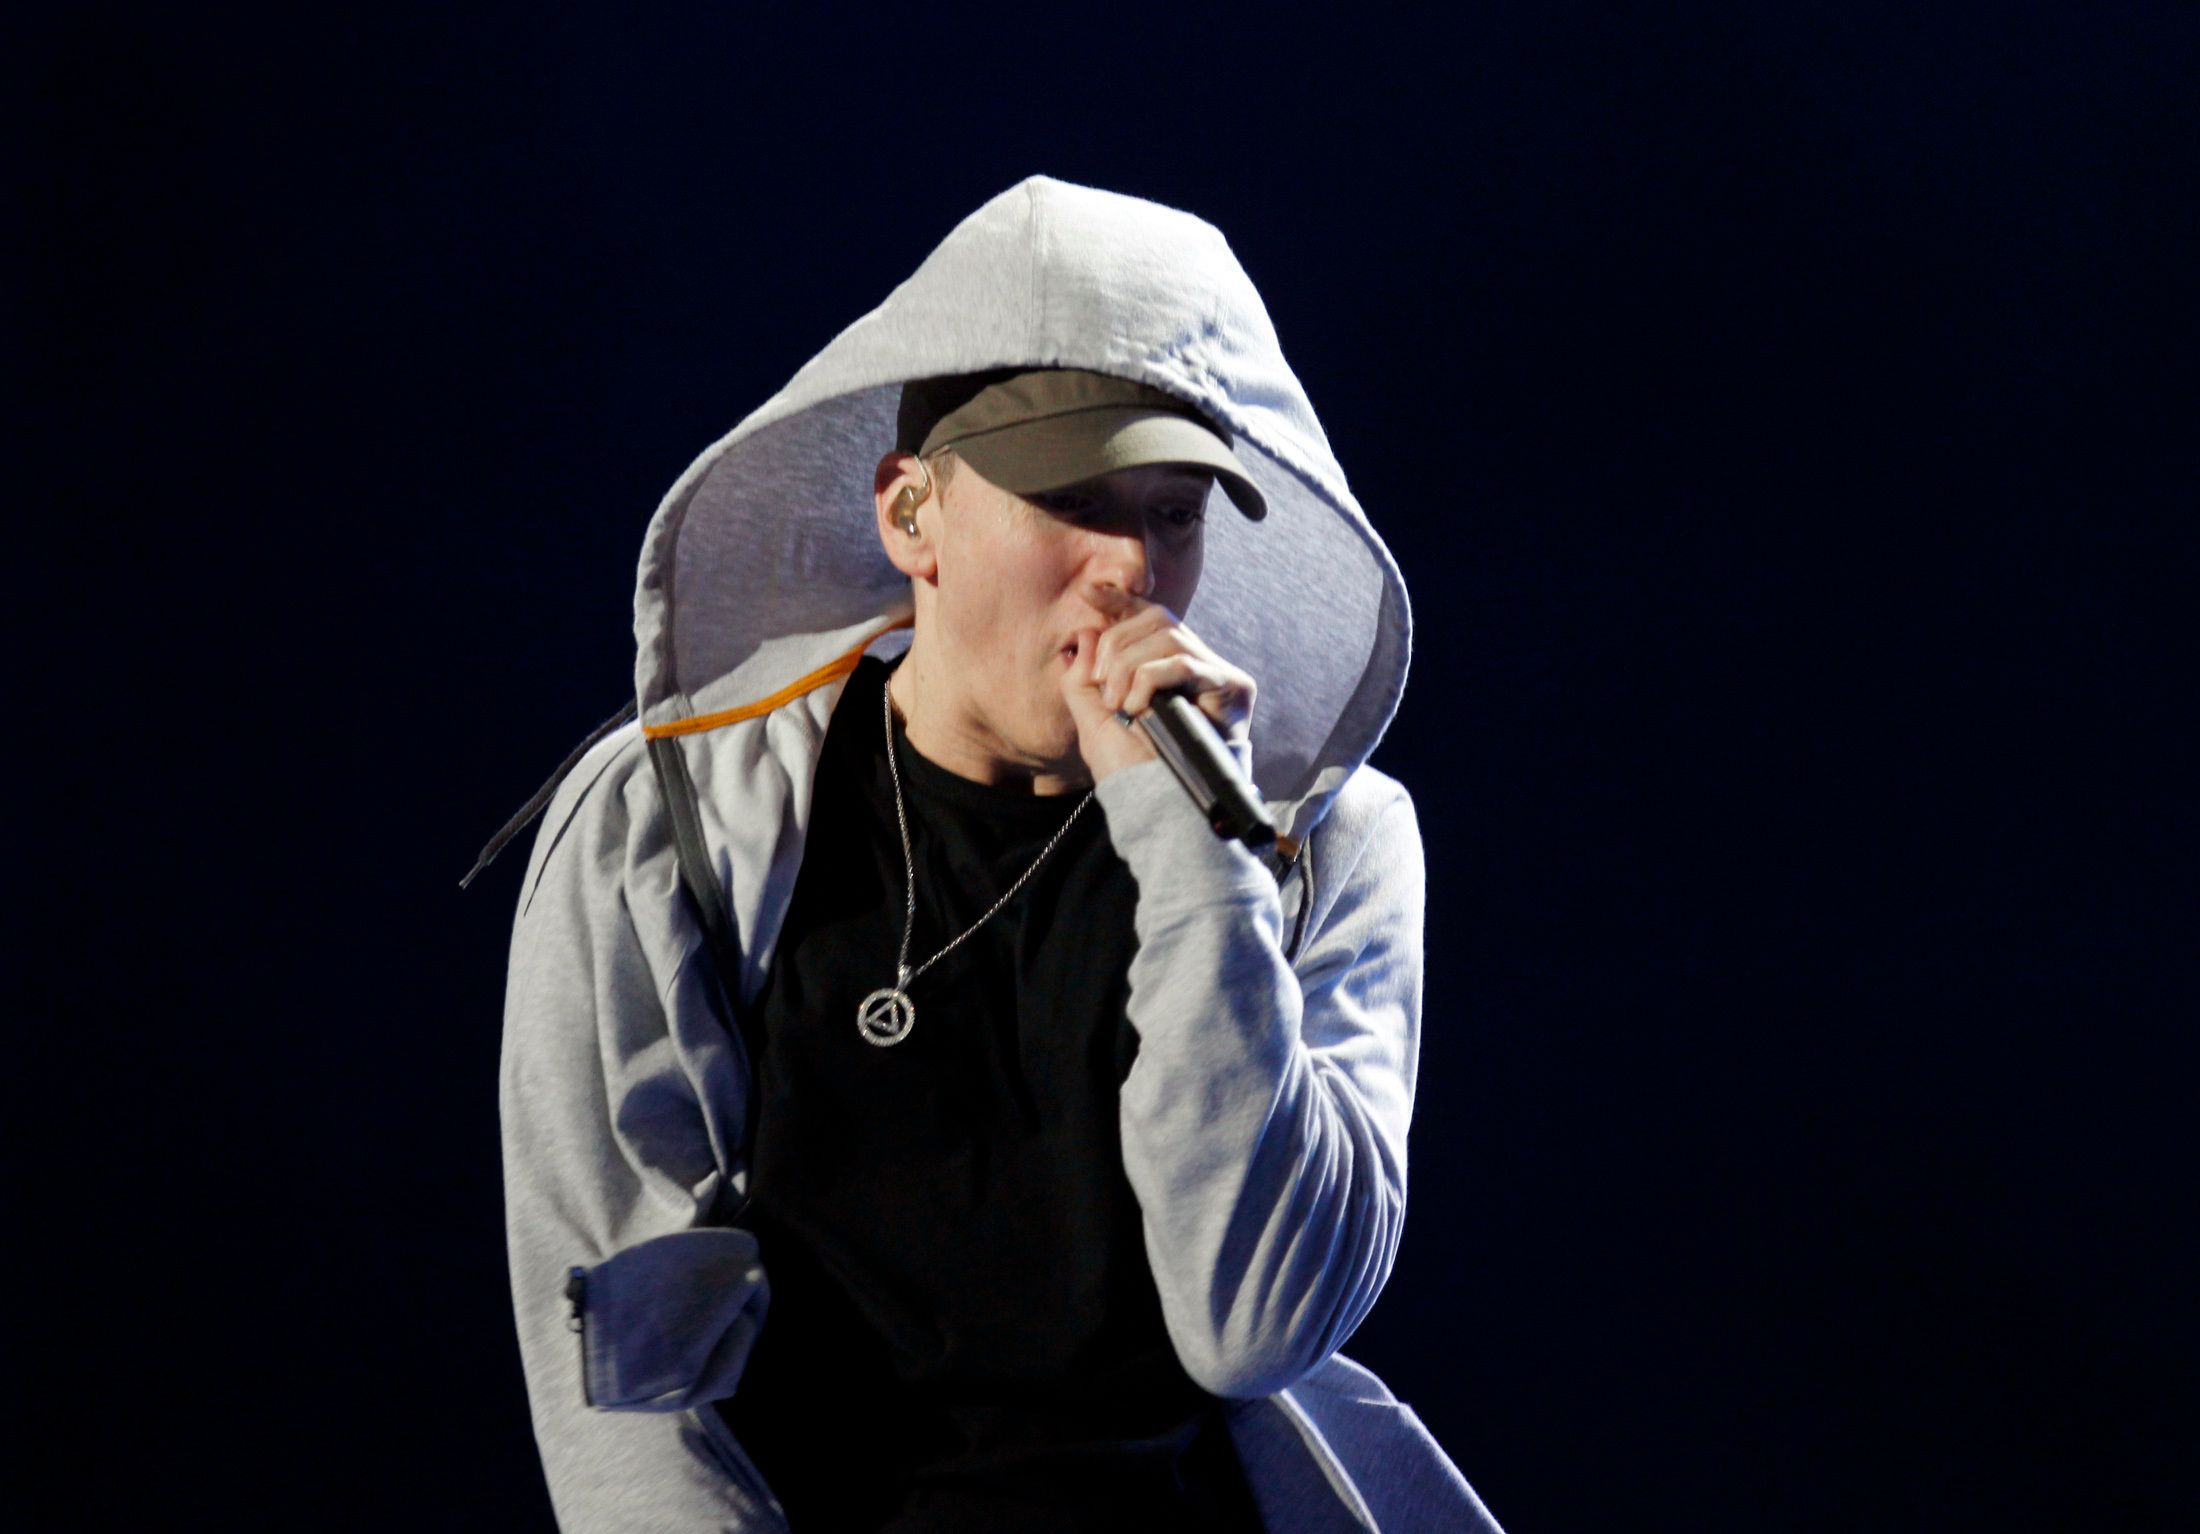 U.S. rapper Eminem performs during the Abu Dhabi F1 Grand Prix After Race closing concert at the du Arena on Yas Island November 4, 2012. REUTERS/Jumana ElHeloueh (UNITED ARAB EMIRATES - Tags: ENTERTAINMENT SPORT MOTORSPORT)